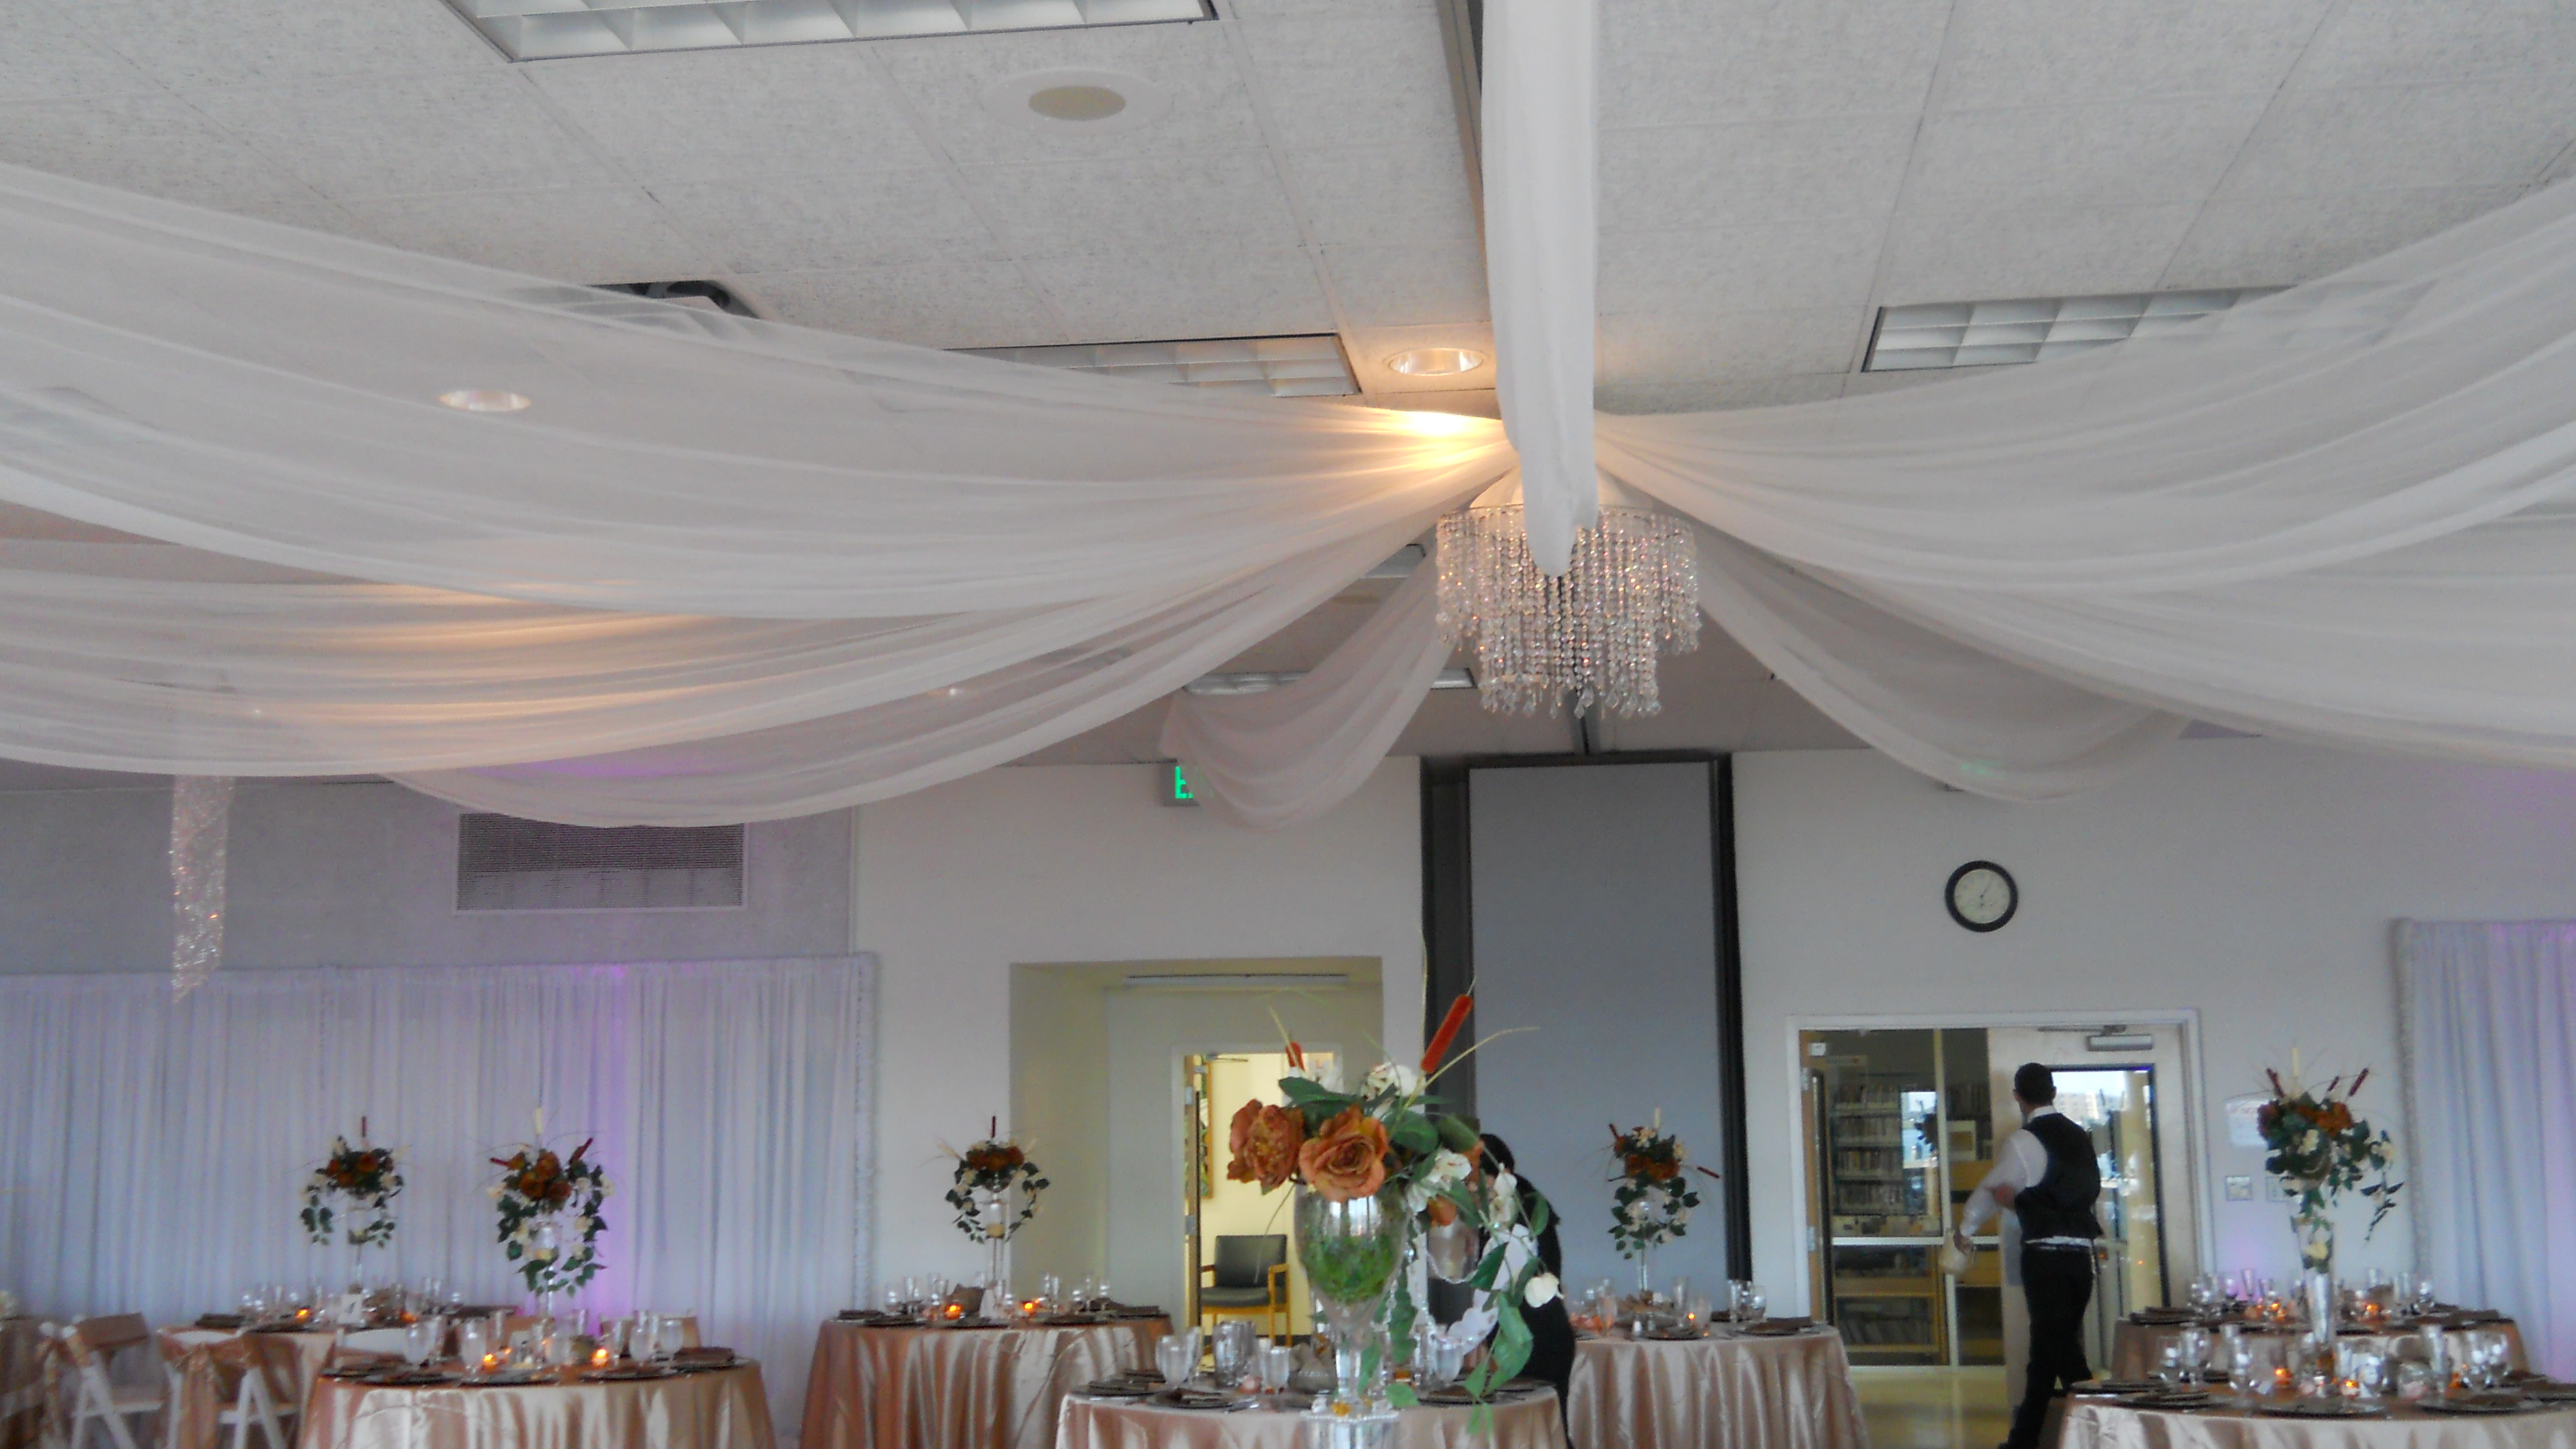 Clearwater Rec Center Ceiling Drape